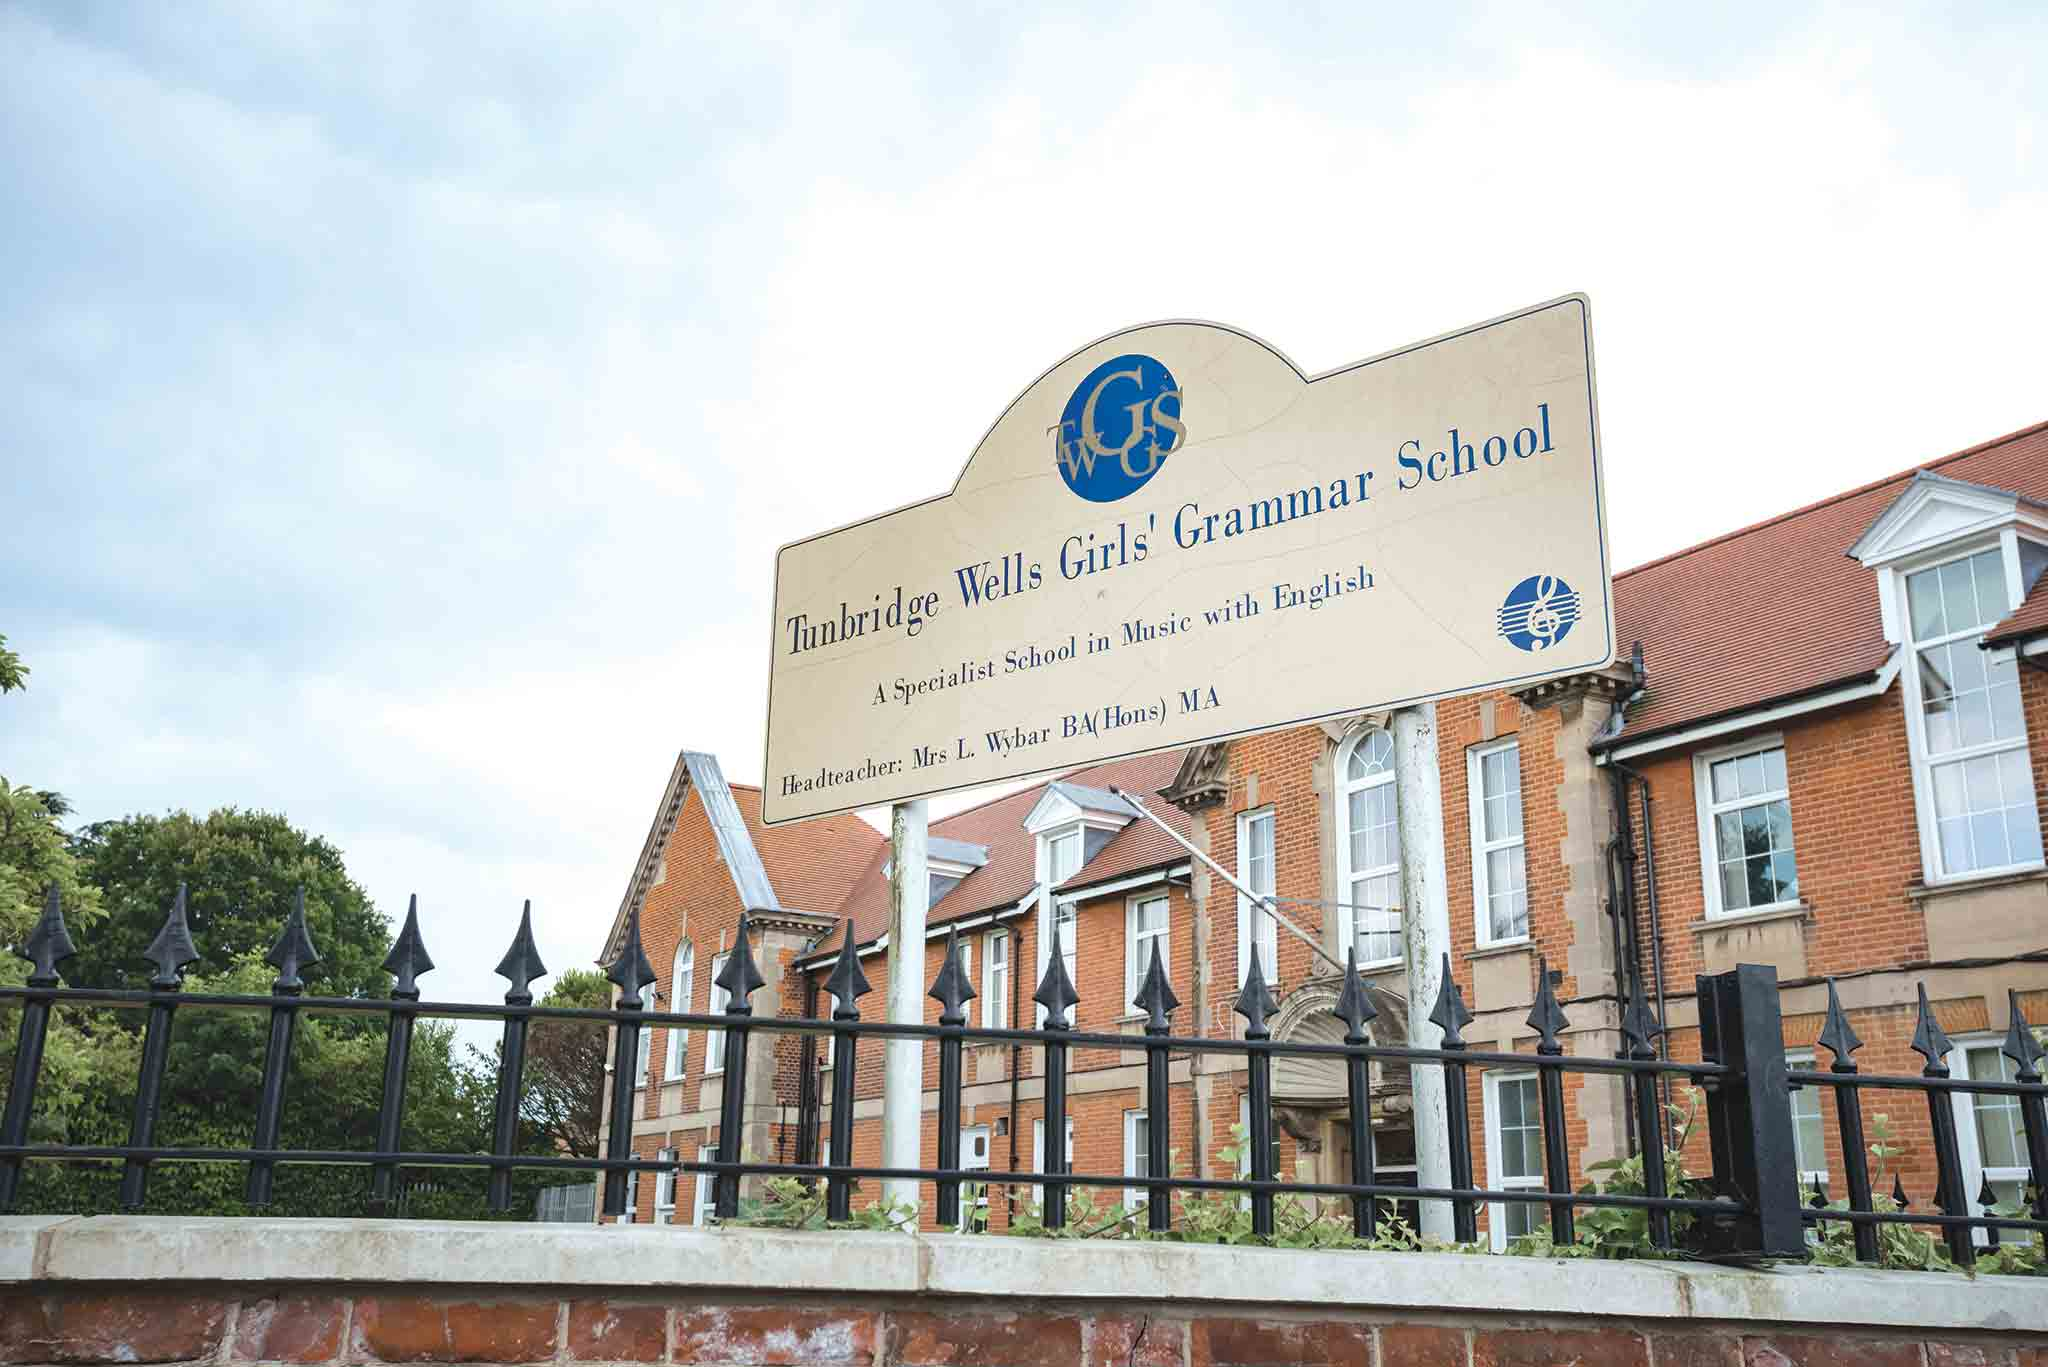 Tunbridge Wells Girls' Grammar School